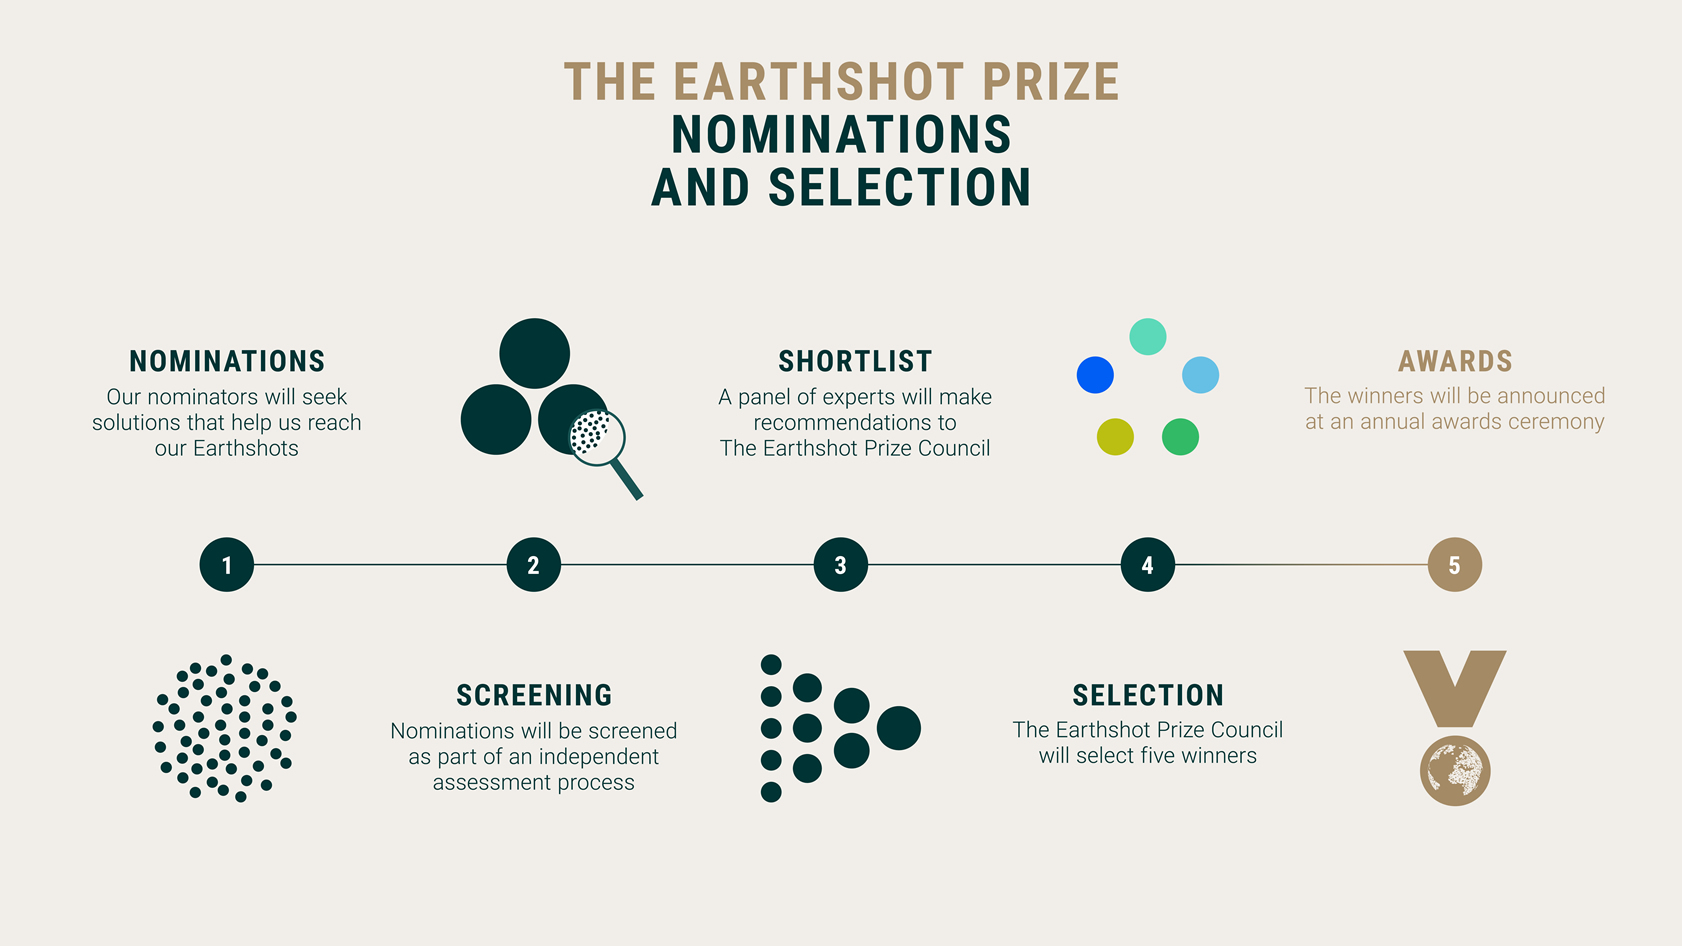 ECI is an Official Nominator for The Earthshot Prize